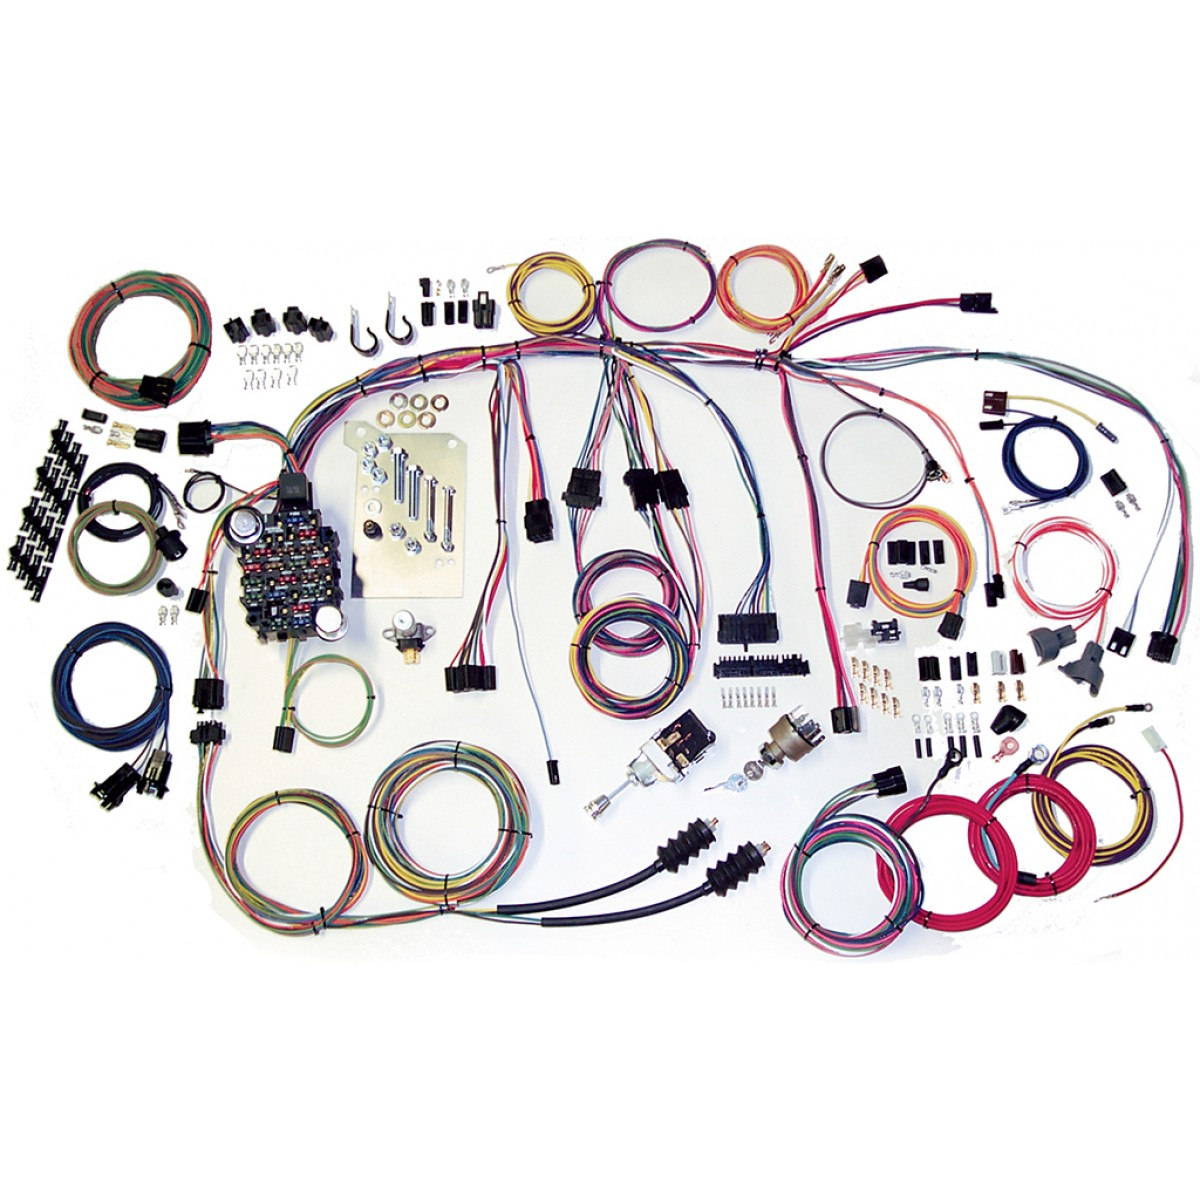 60 66 chevy truck wiring harness kit 1960 1966 chevy truck part 500560 chevy c10 c20 wiring harness chevy c10 wiring harness complete wiring harness kit 1960 1966 chevy wiring harness at eliteediting.co